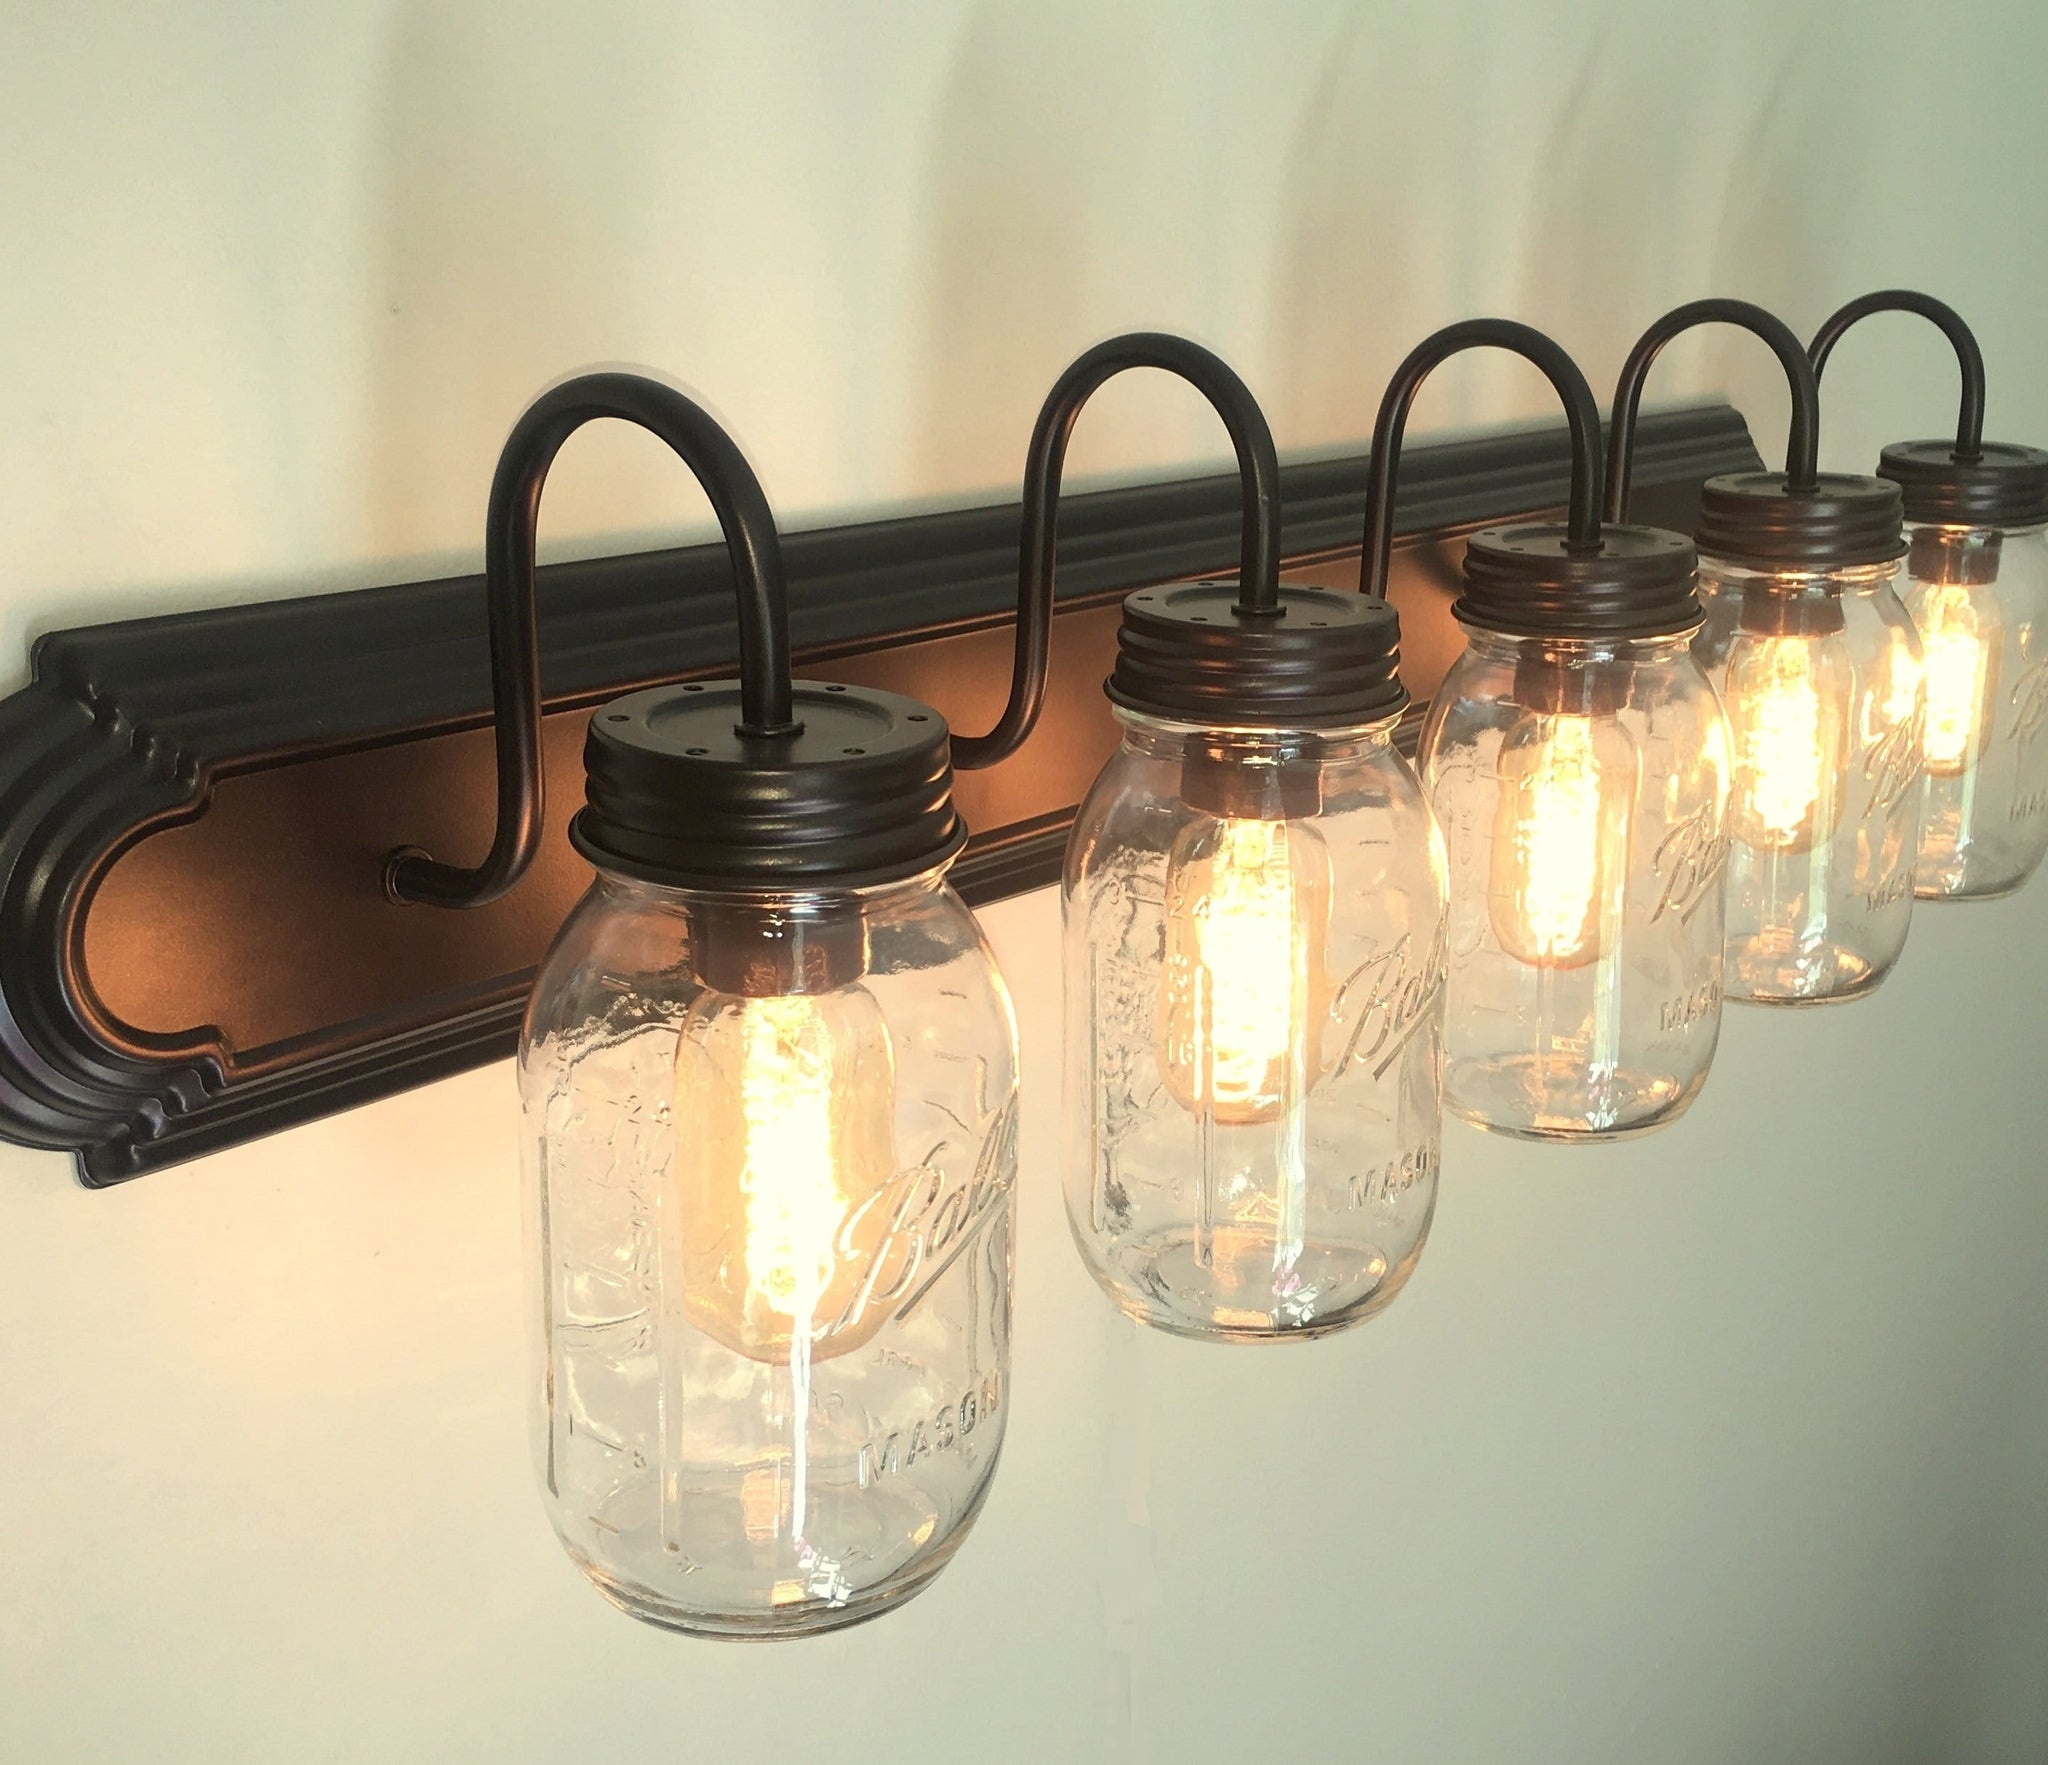 Mason Jar Bathroom Vanity 5 Light Wall Sconce Fixture